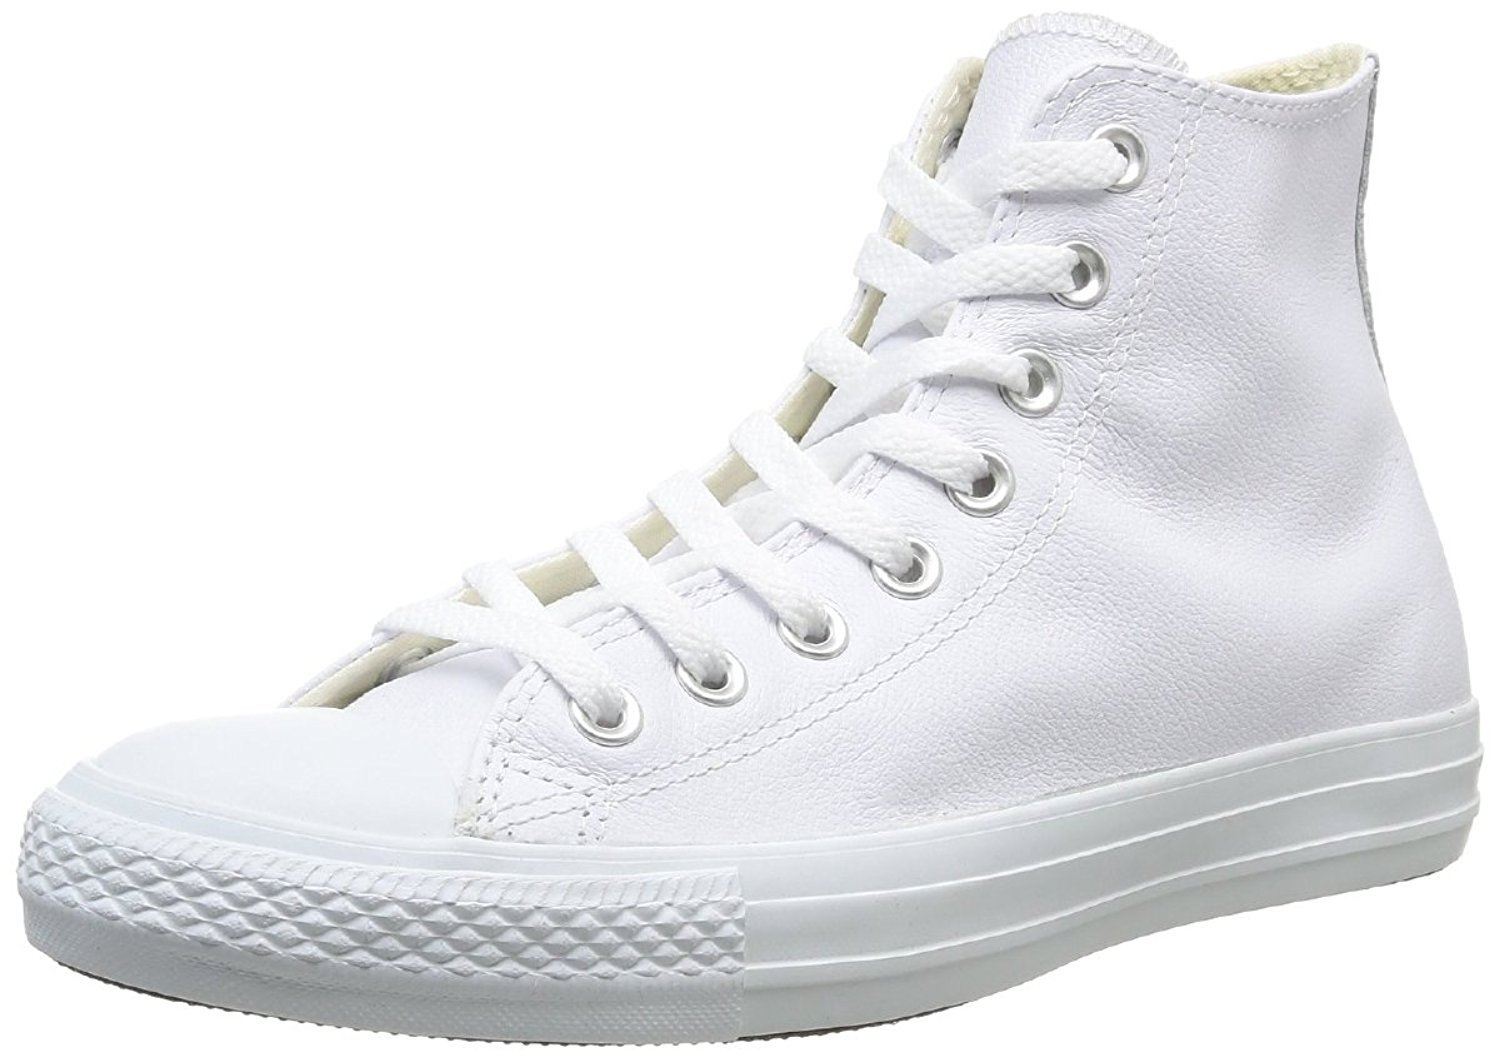 Converse Chuck White Taylor Etoiles Etoiles 19925 Low Top Sneakers Sneaker Mode White Monochrome fedfcdc - fast-weightloss-diet.space